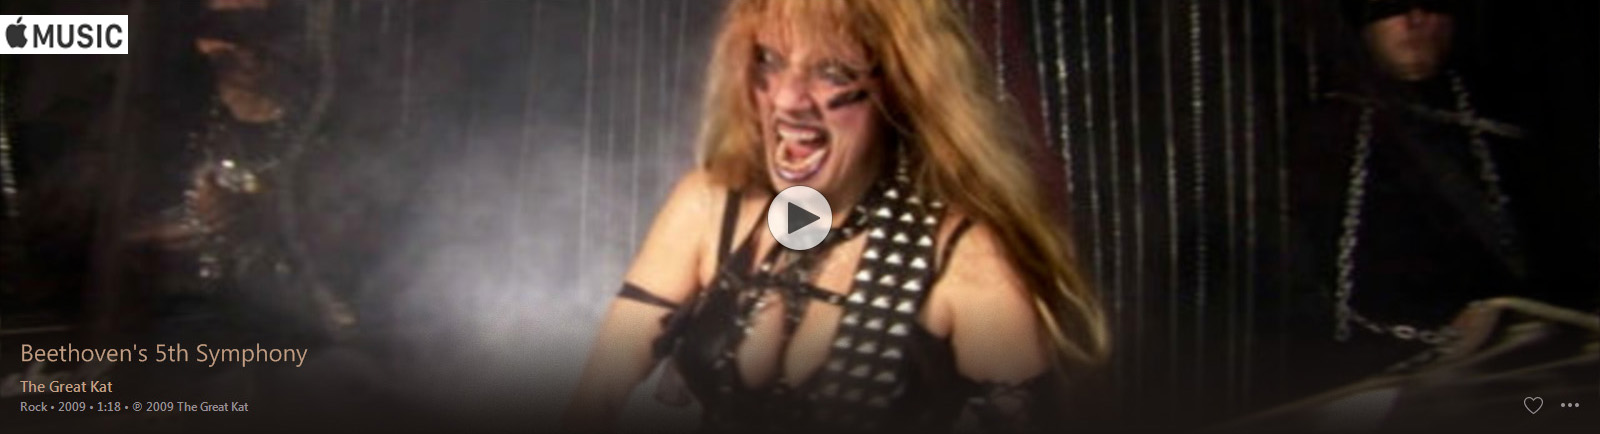 "APPLE MUSIC is NOW STREAMING The Great Kat's BEETHOVEN'S ""5th SYMPHONY"" MUSIC VIDEO!"